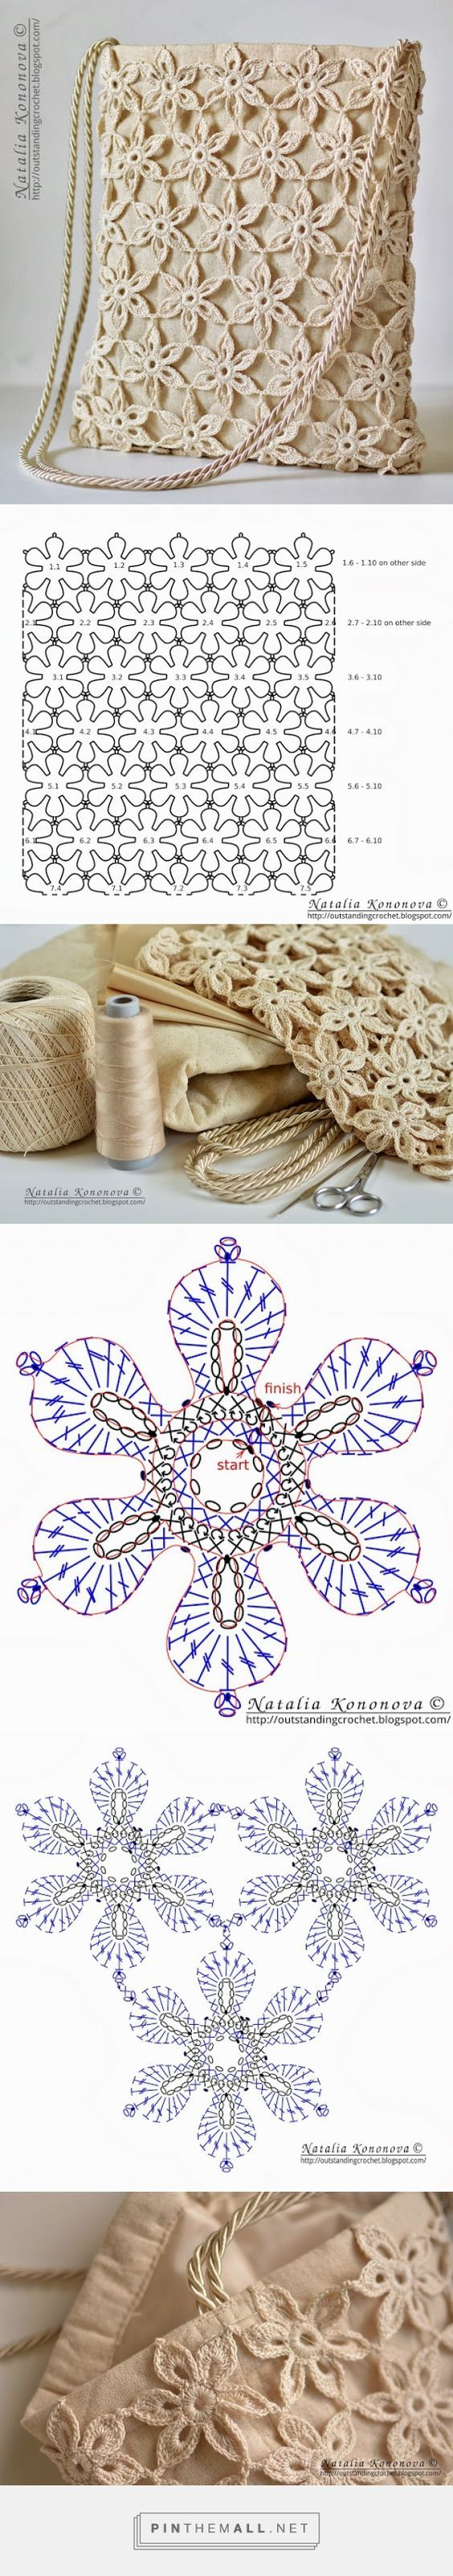 "Crochet_Tutorial - ""Outstanding Crochet: Limited time free pattern/tutorial for Crochet Summer Tote Bag. Very detailed instructions."""